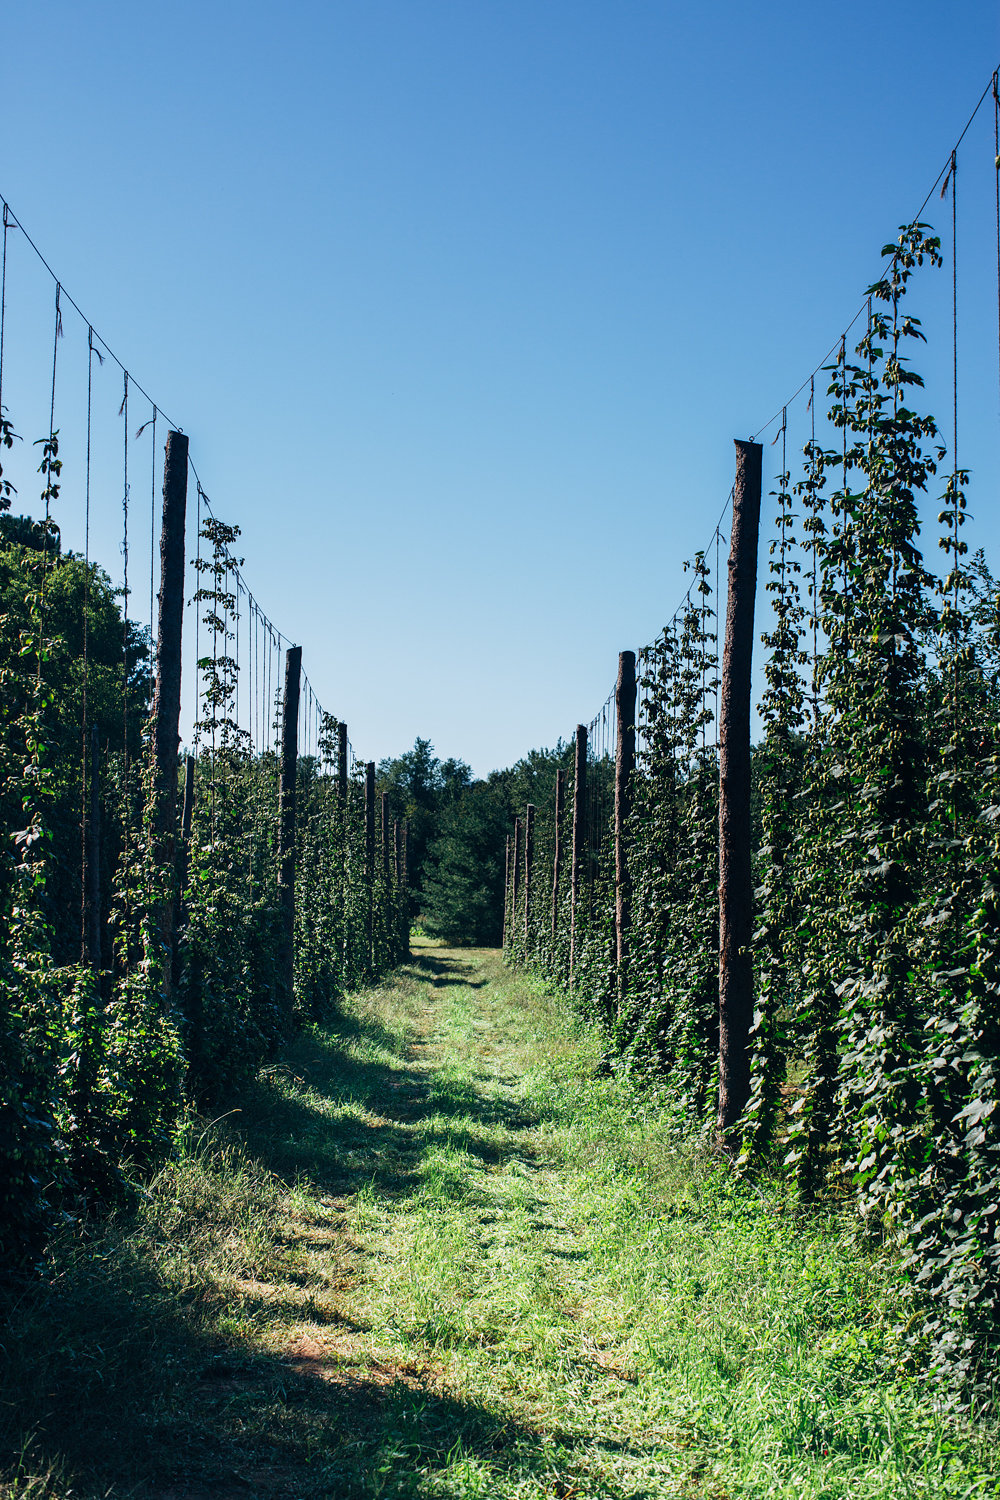 Hops growing on huge tamarack tree logs.